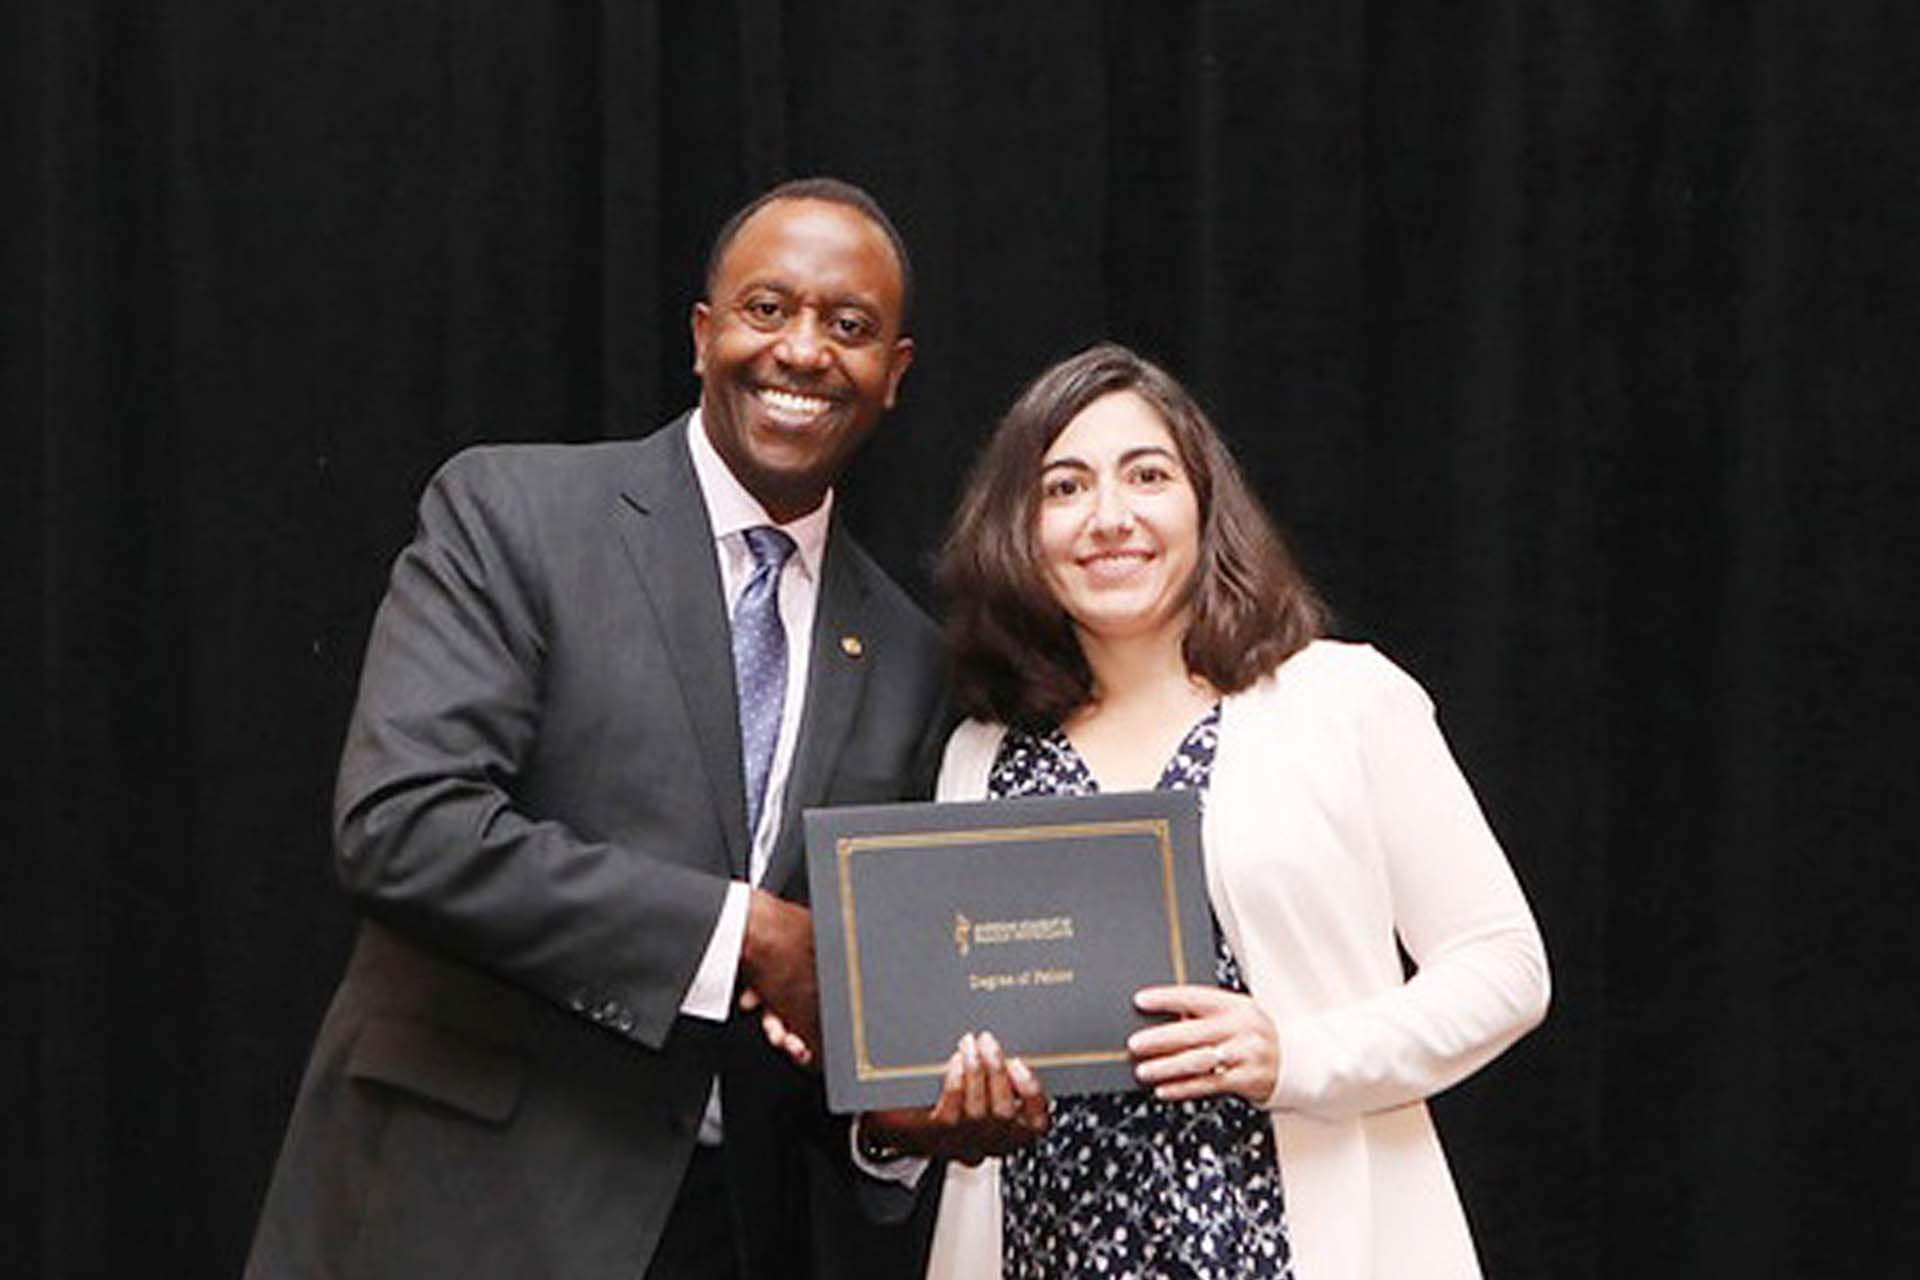 Dr. Johanna Biola, FAAFP achieved the Degree of Fellow of the American Academy of Family Physicians. Gary LeRoy, MD, is the President of AAFP, and presented Dr. Biola her diploma during a formal convocation on September 27.